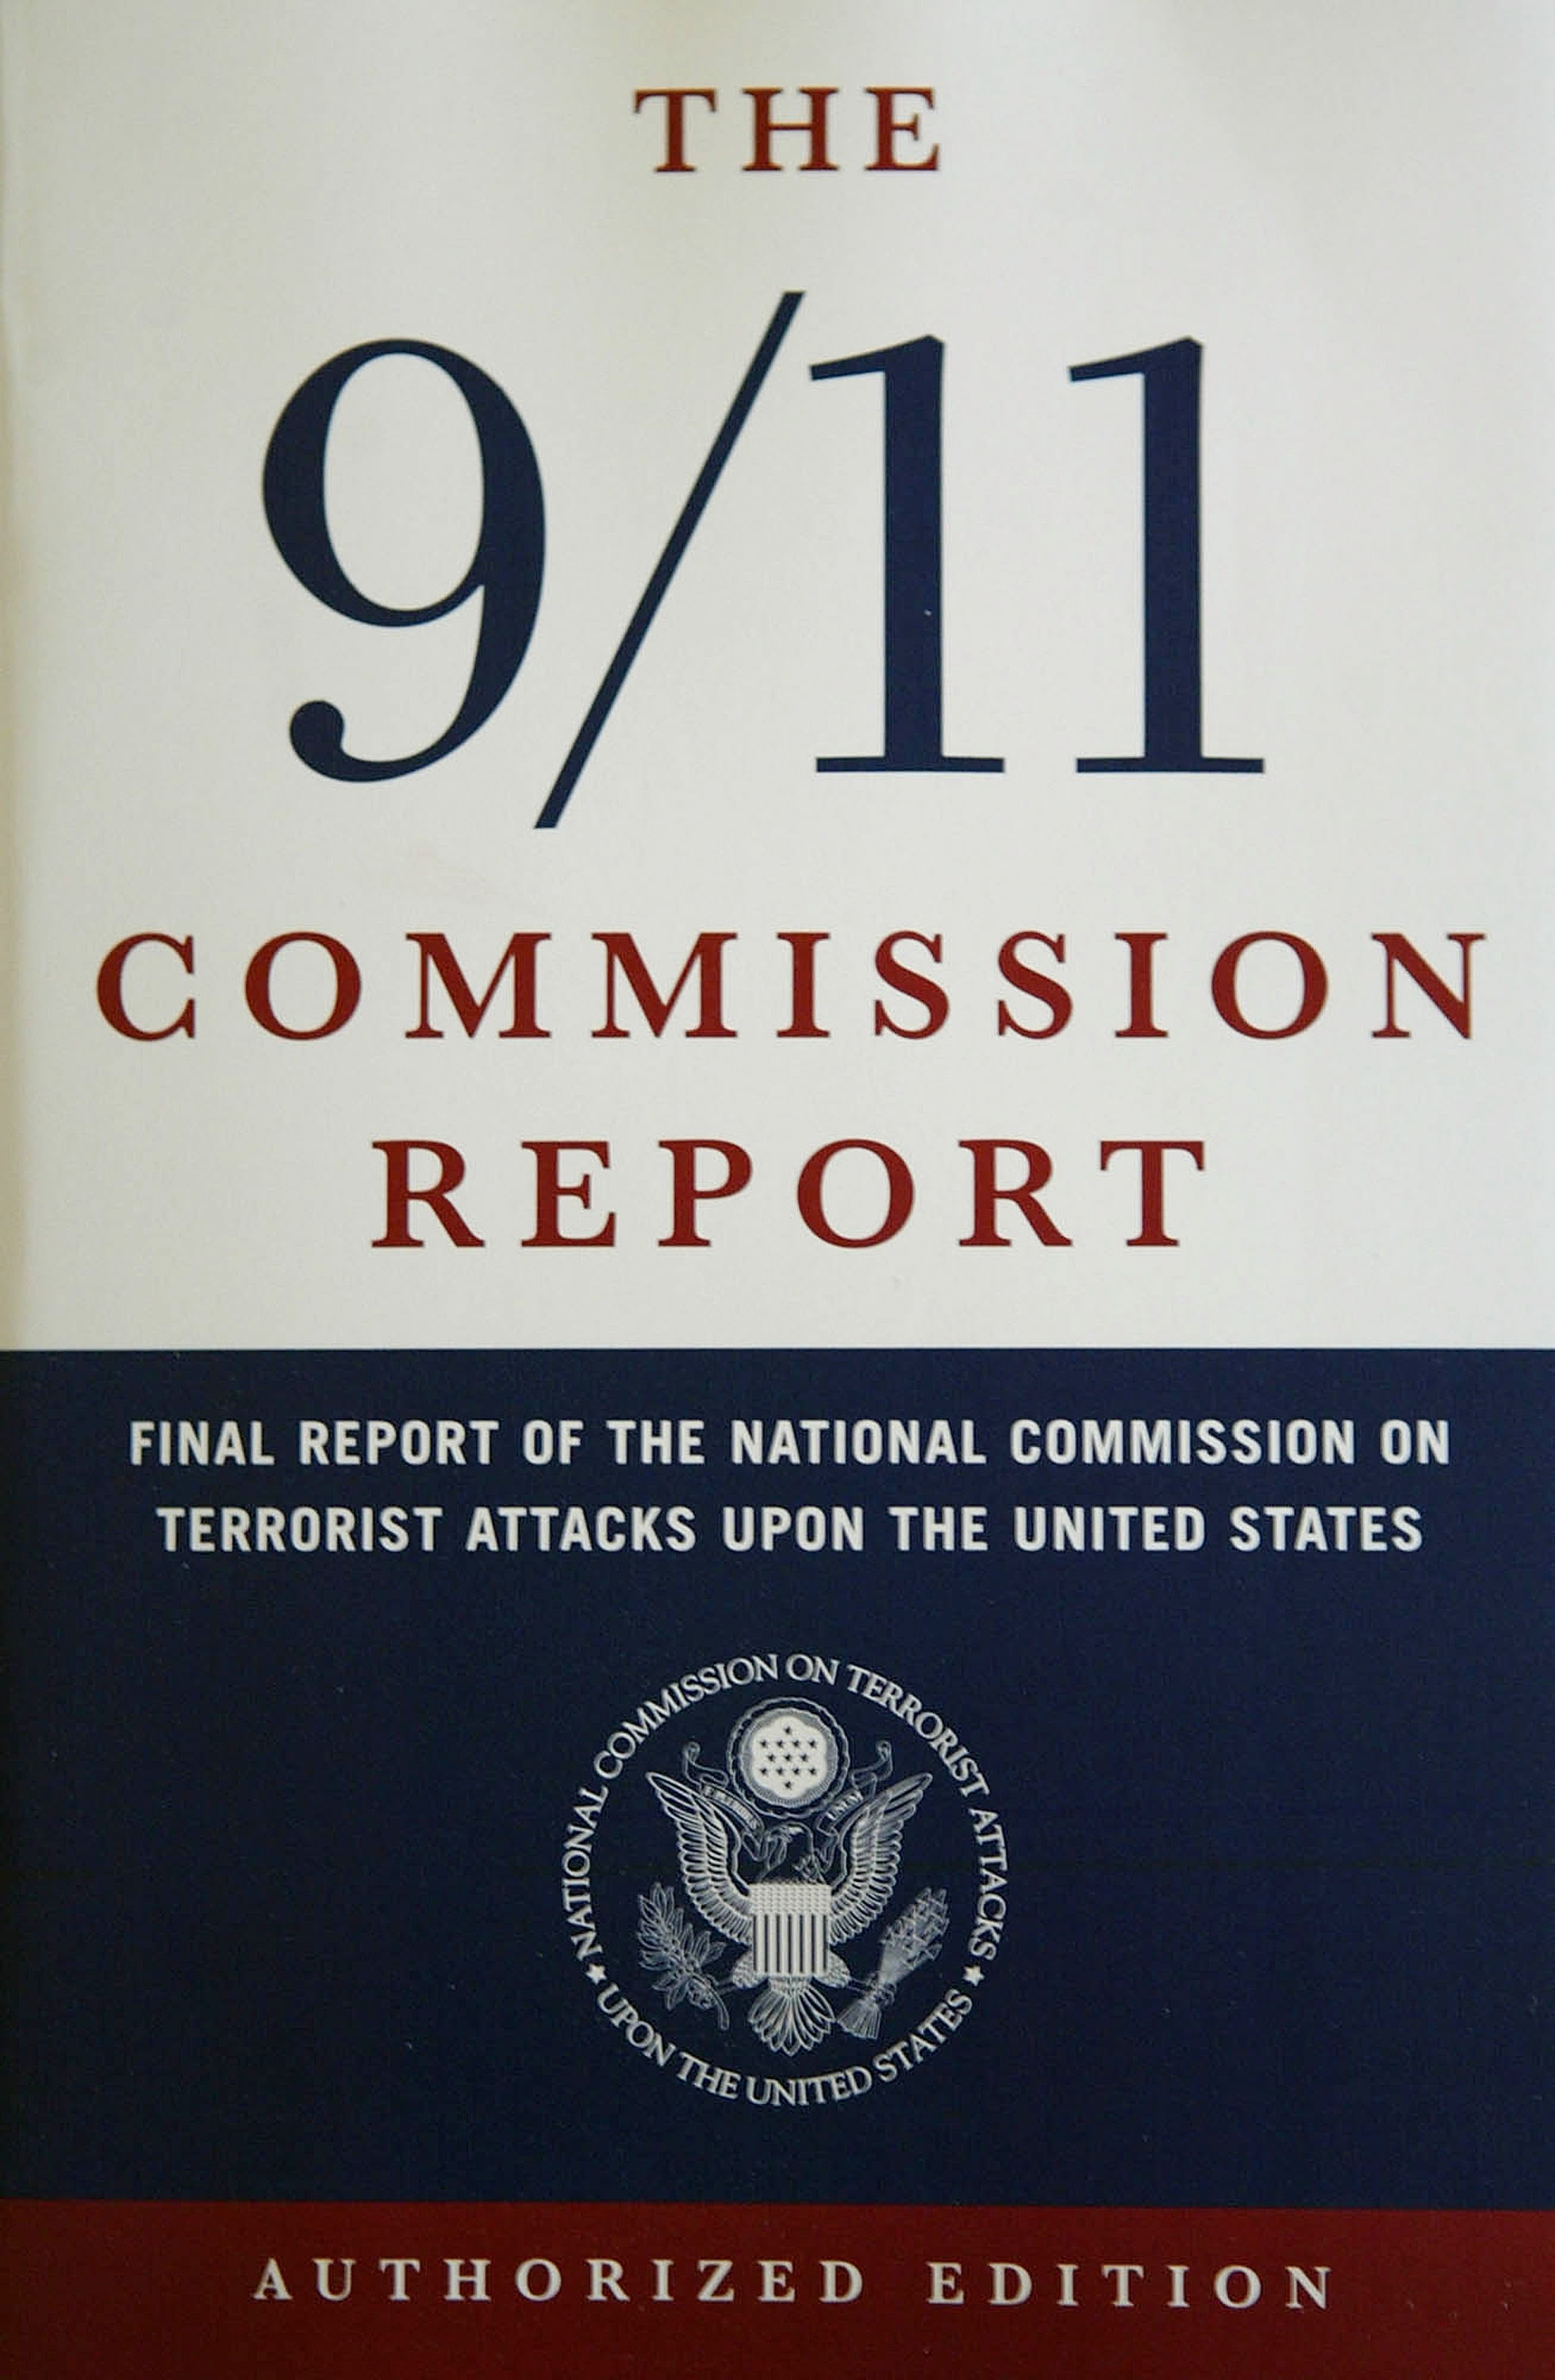 Commission releases updated list of post 9/11 concerns